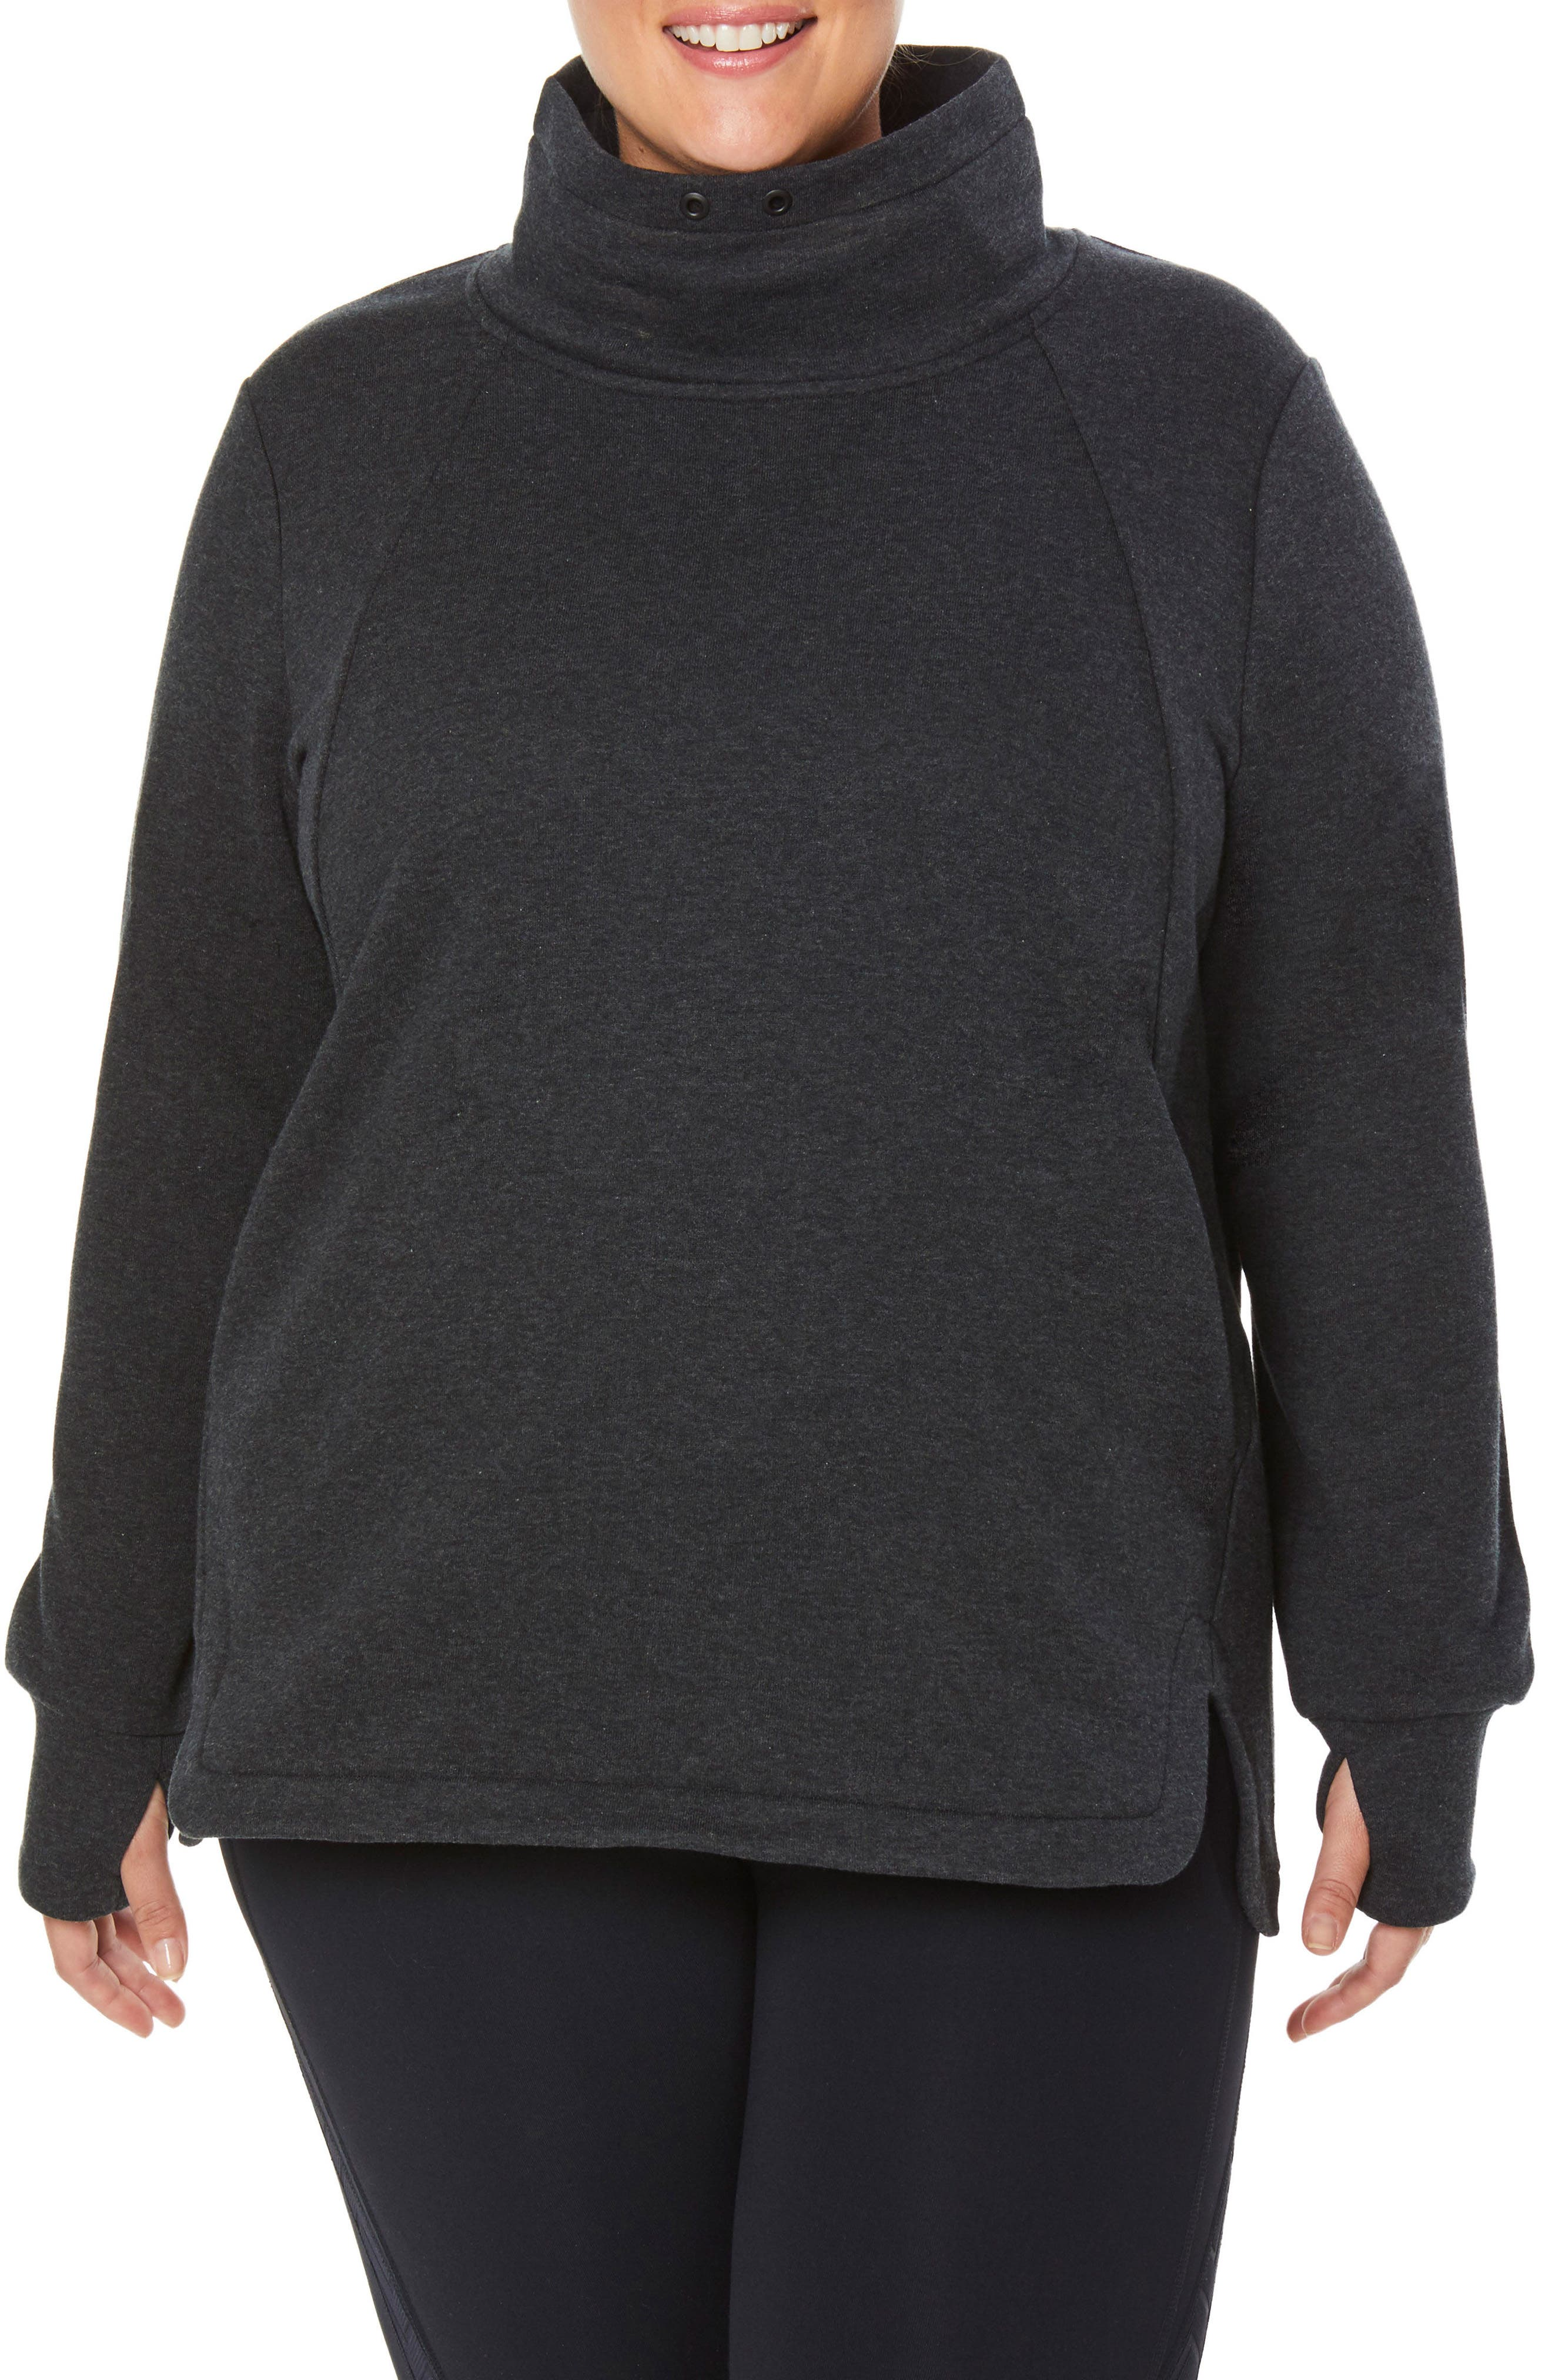 Saturday Mock Neck Pullover,                         Main,                         color, CHARCOAL BLACK